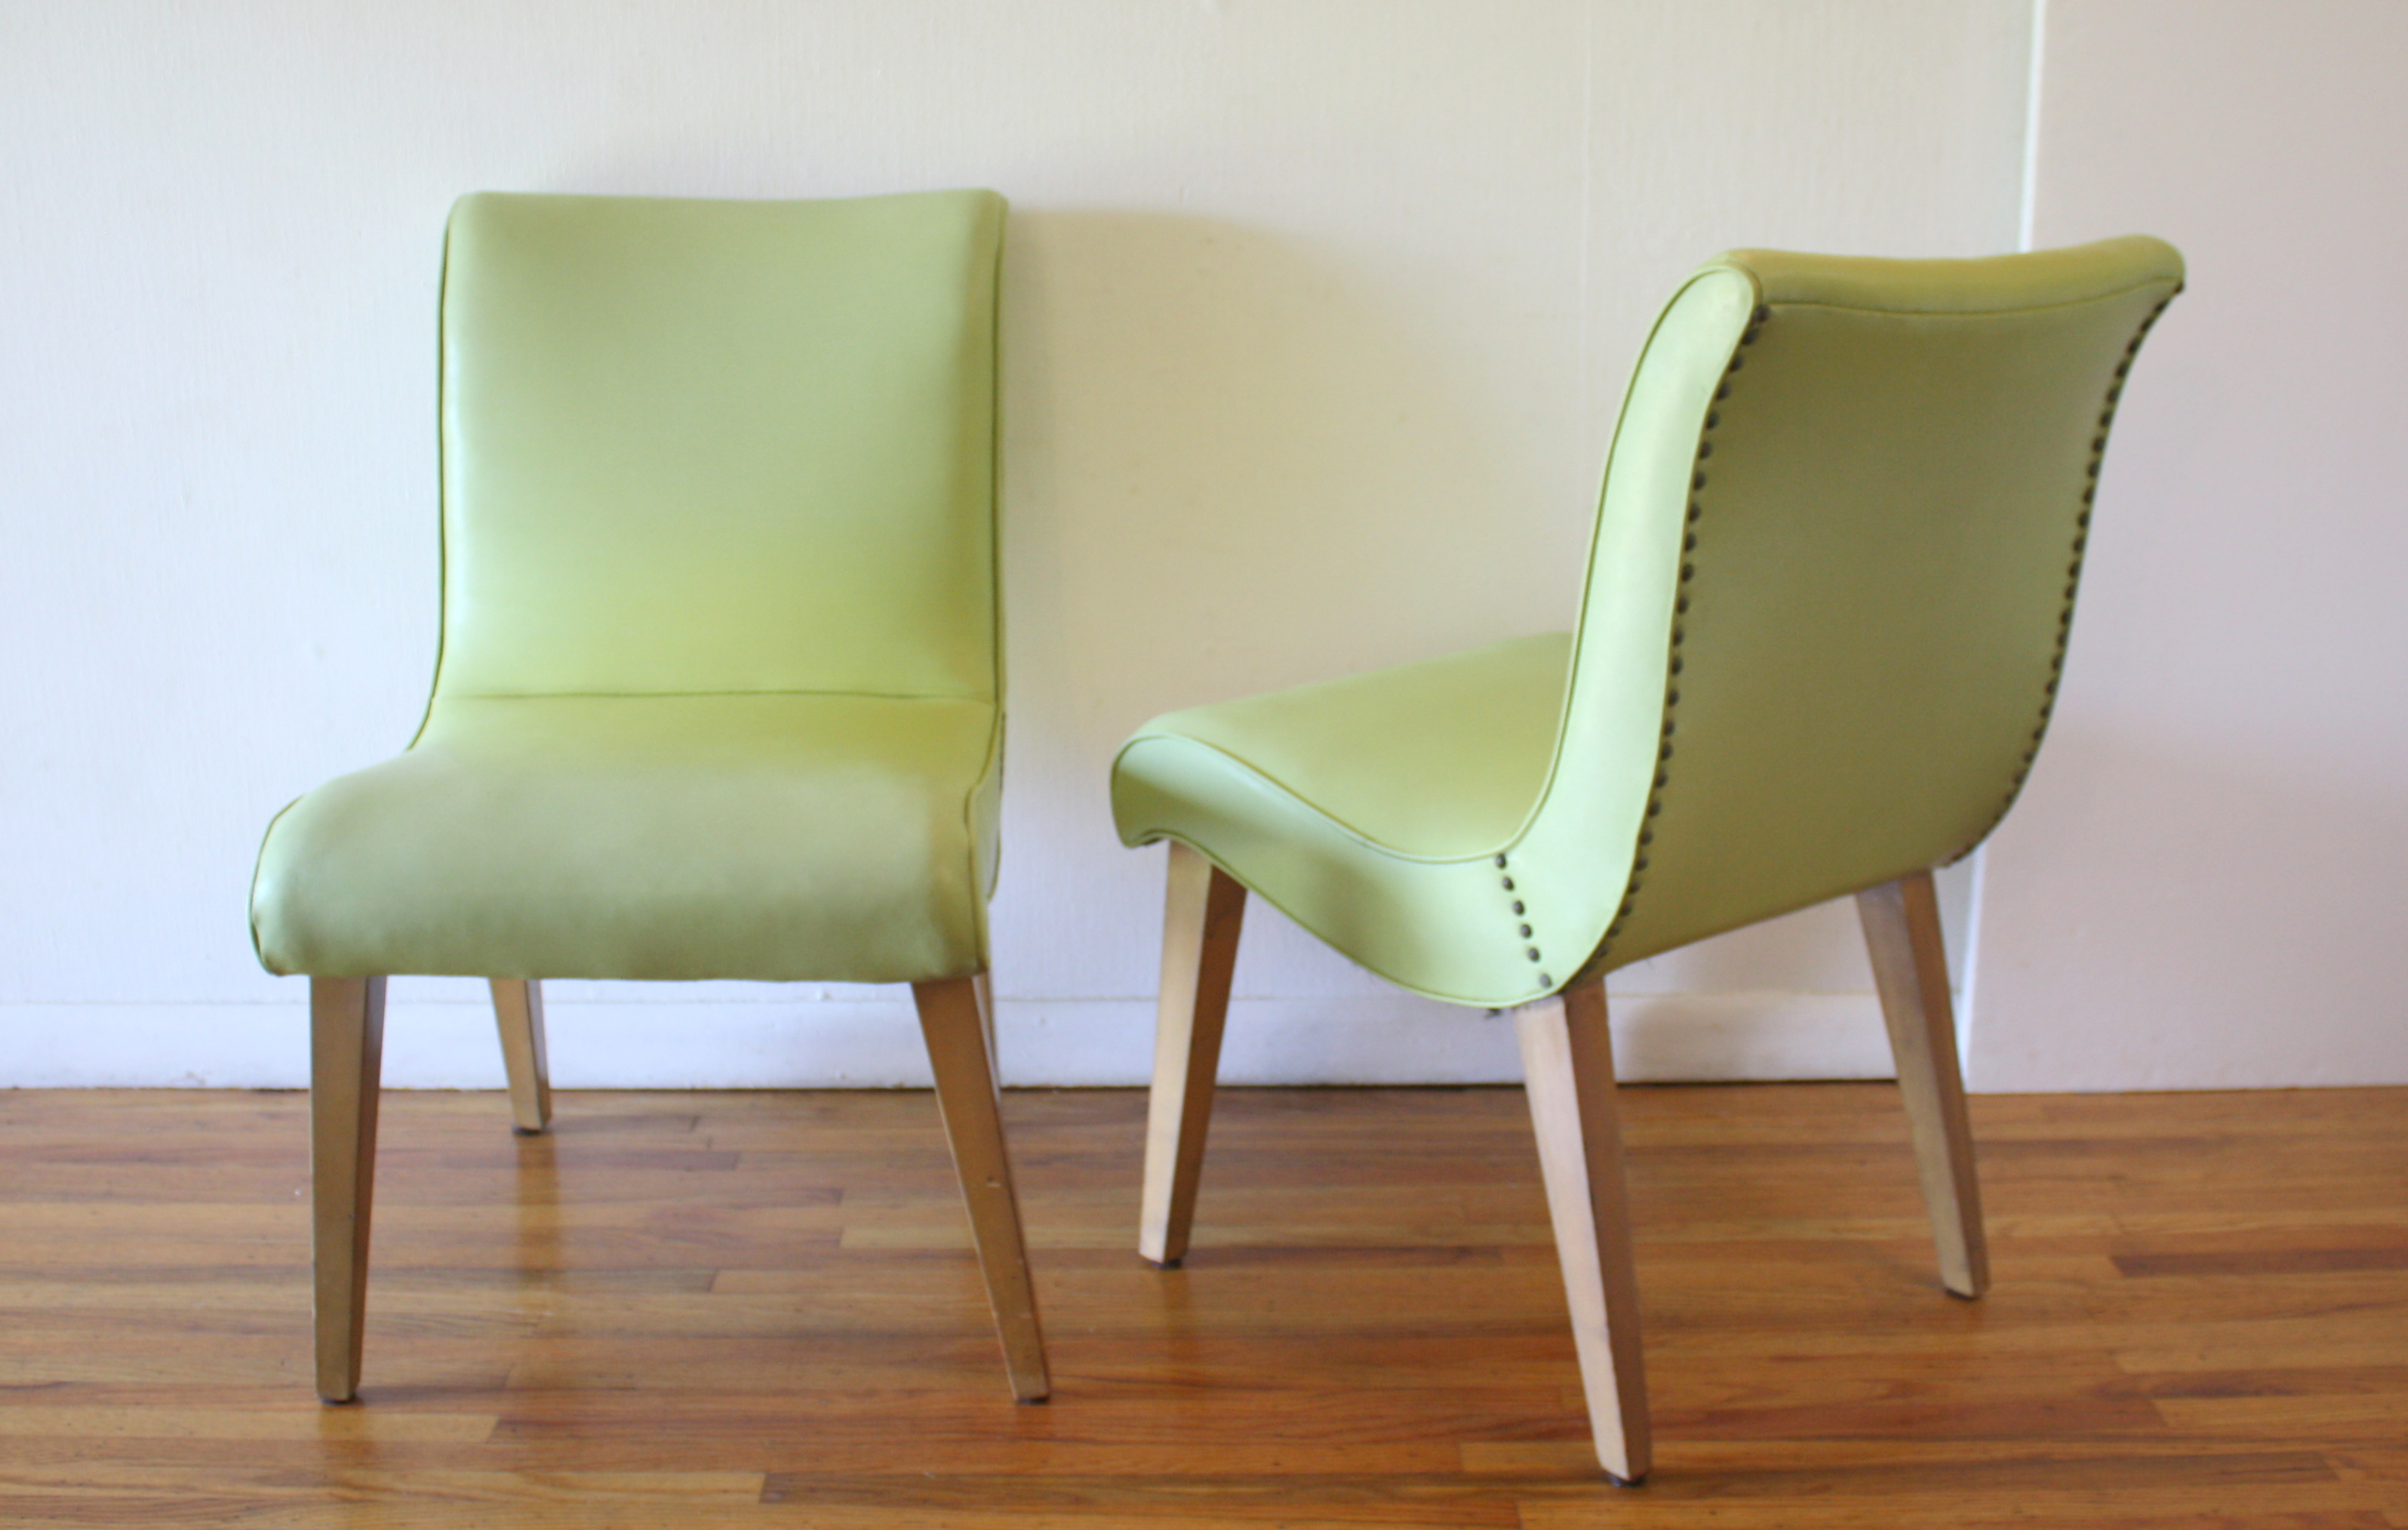 mcm pair of chartreuse green slipper chairs 2.JPG